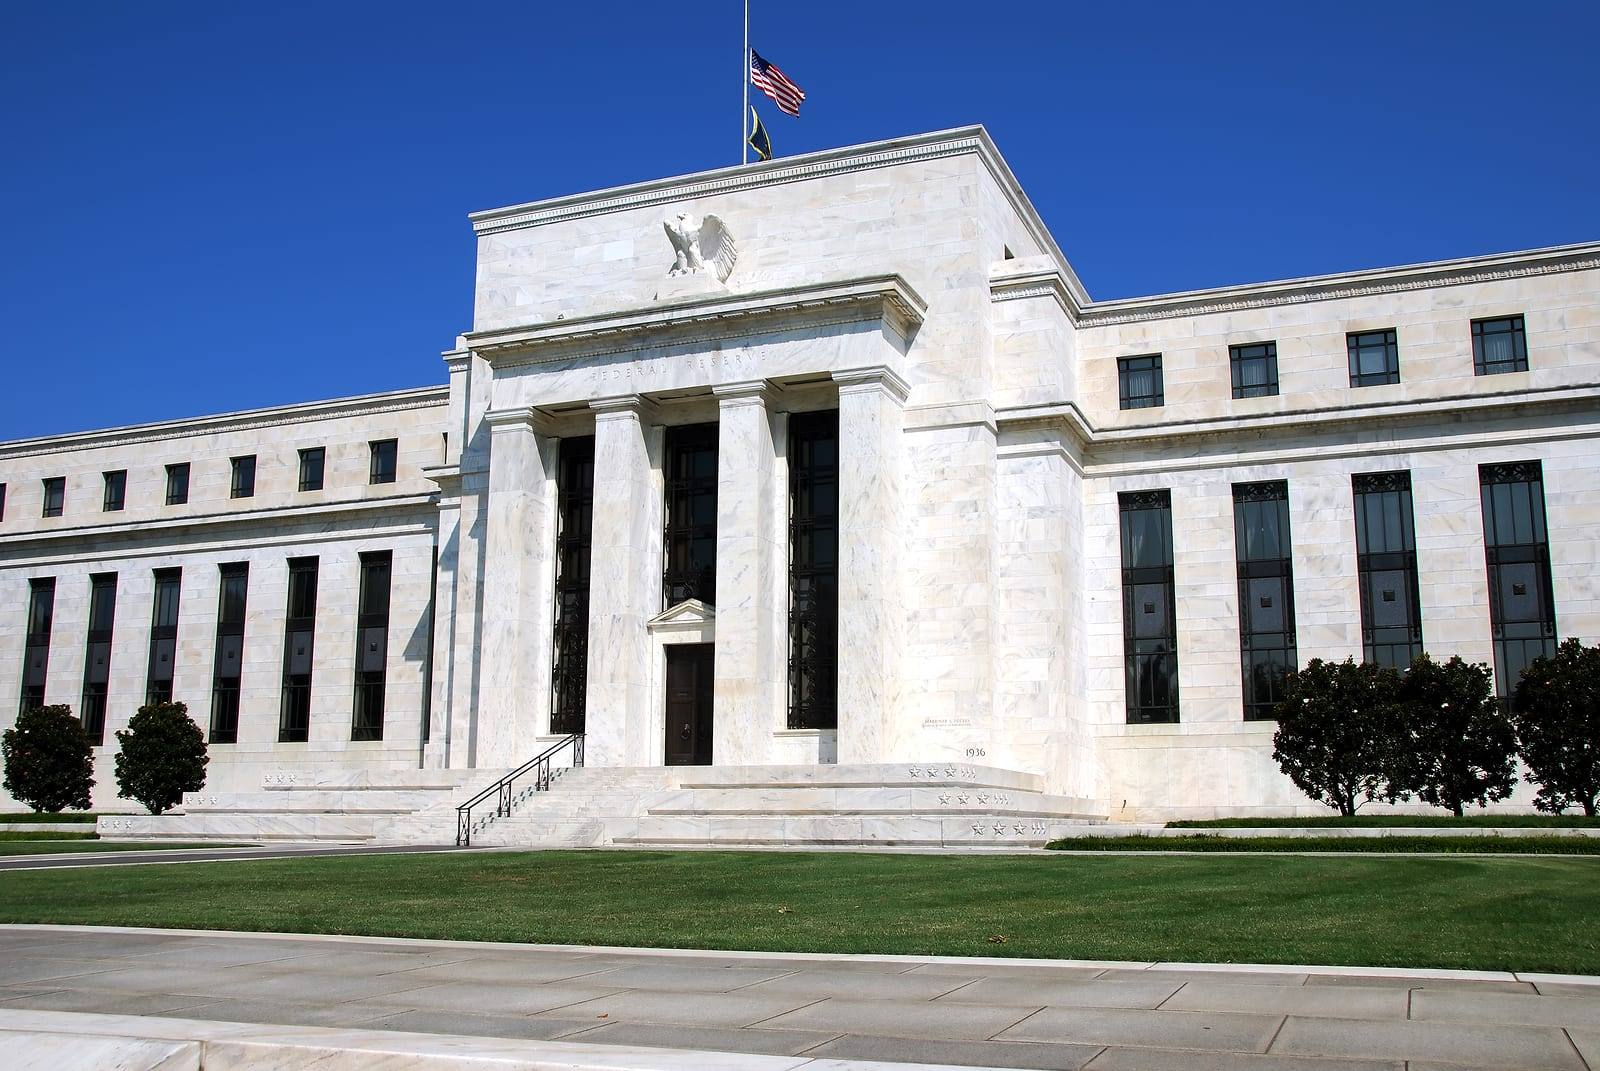 Federal Reserve Board, Federal Open Market Committee release economic projections from the June 18-19 FOMC meeting